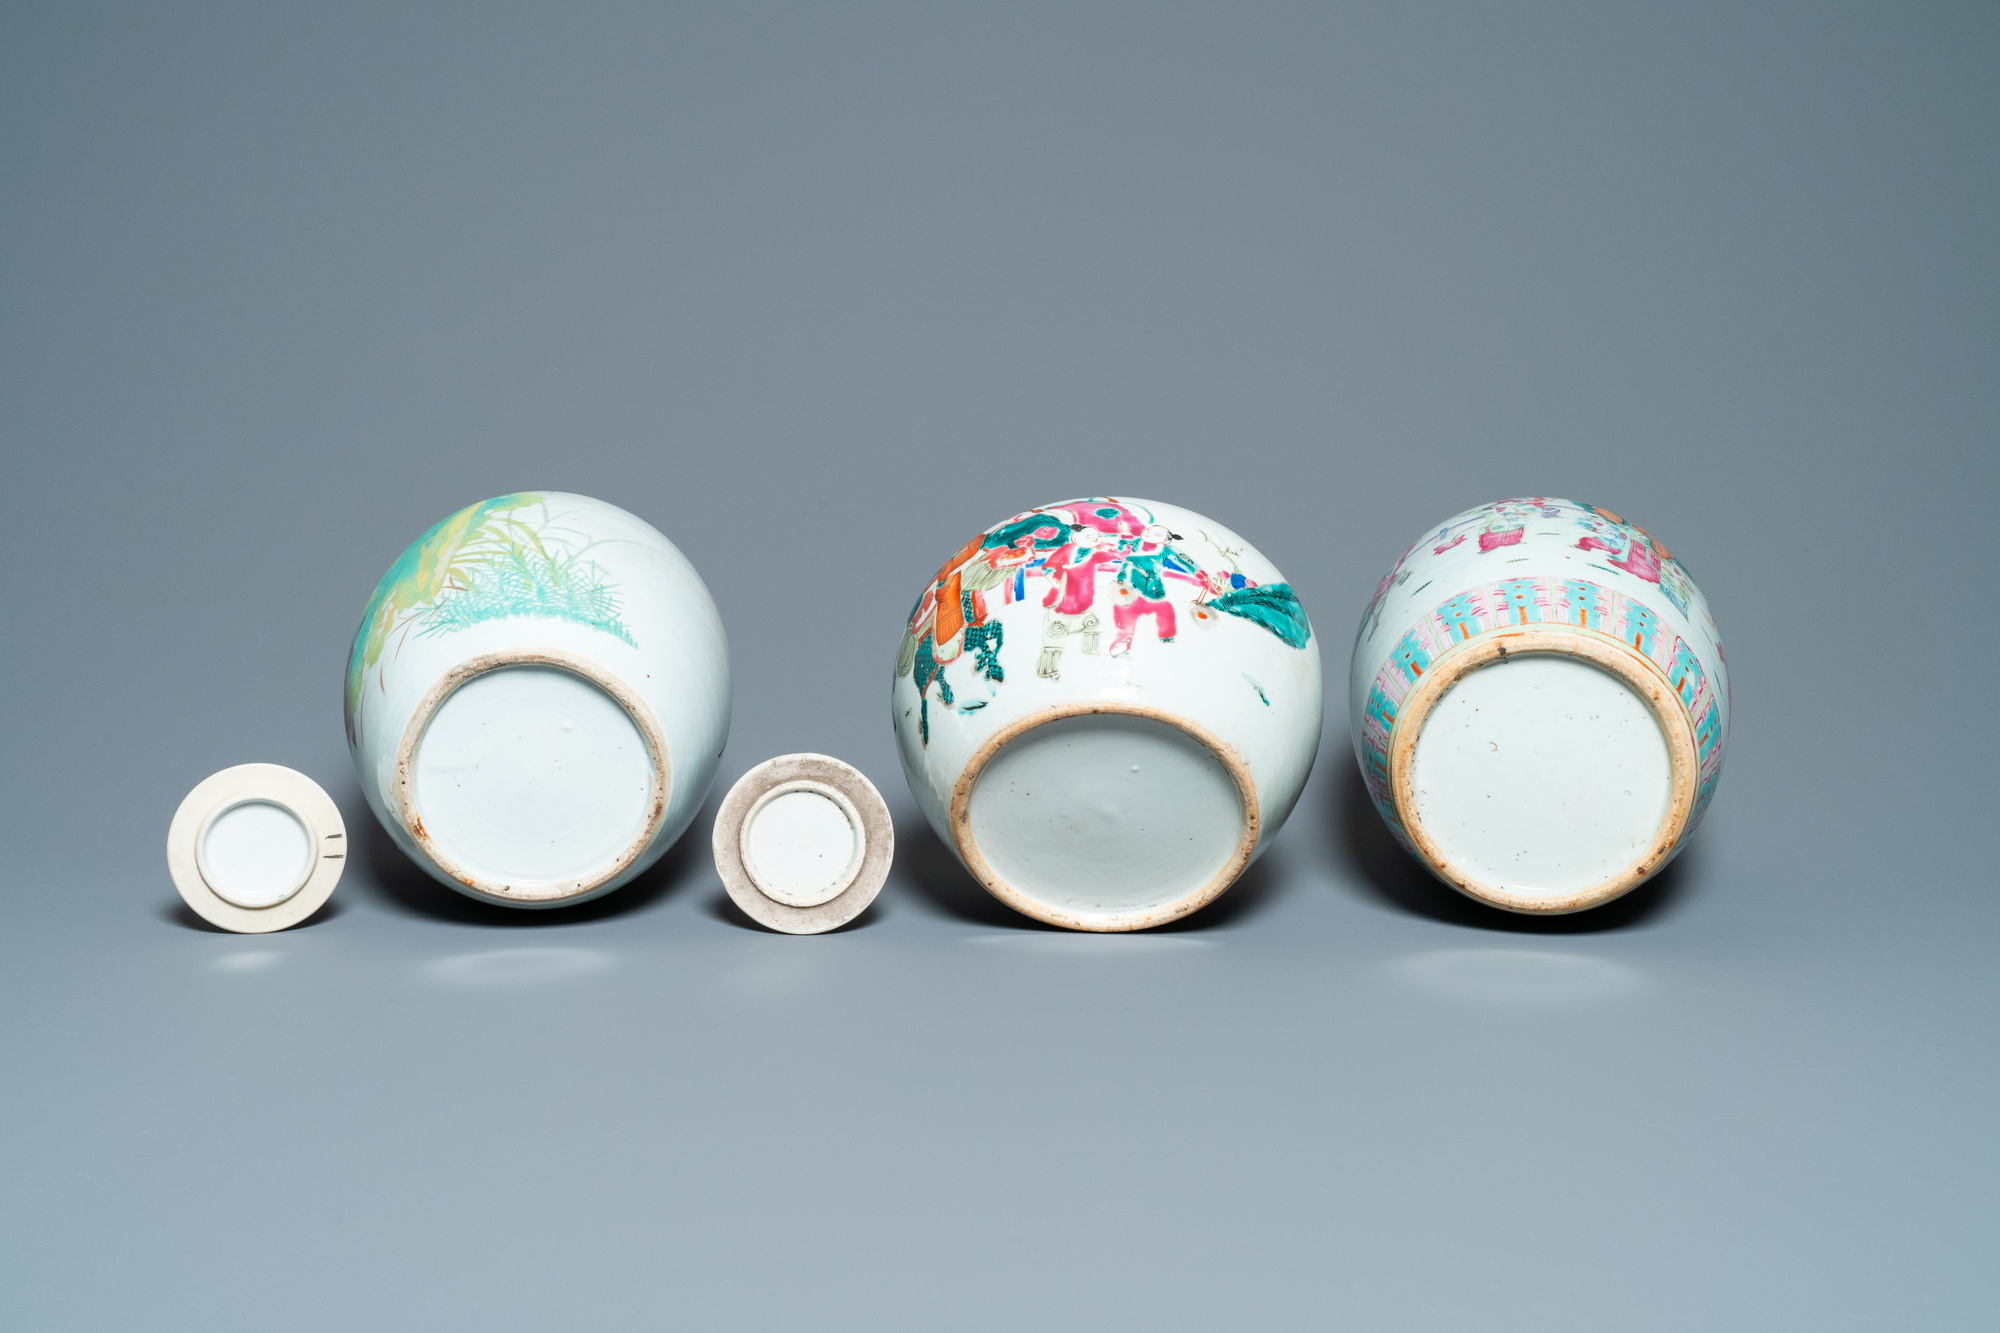 Six Chinese famille rose and verte vases, 19/20th C. - Image 7 of 13